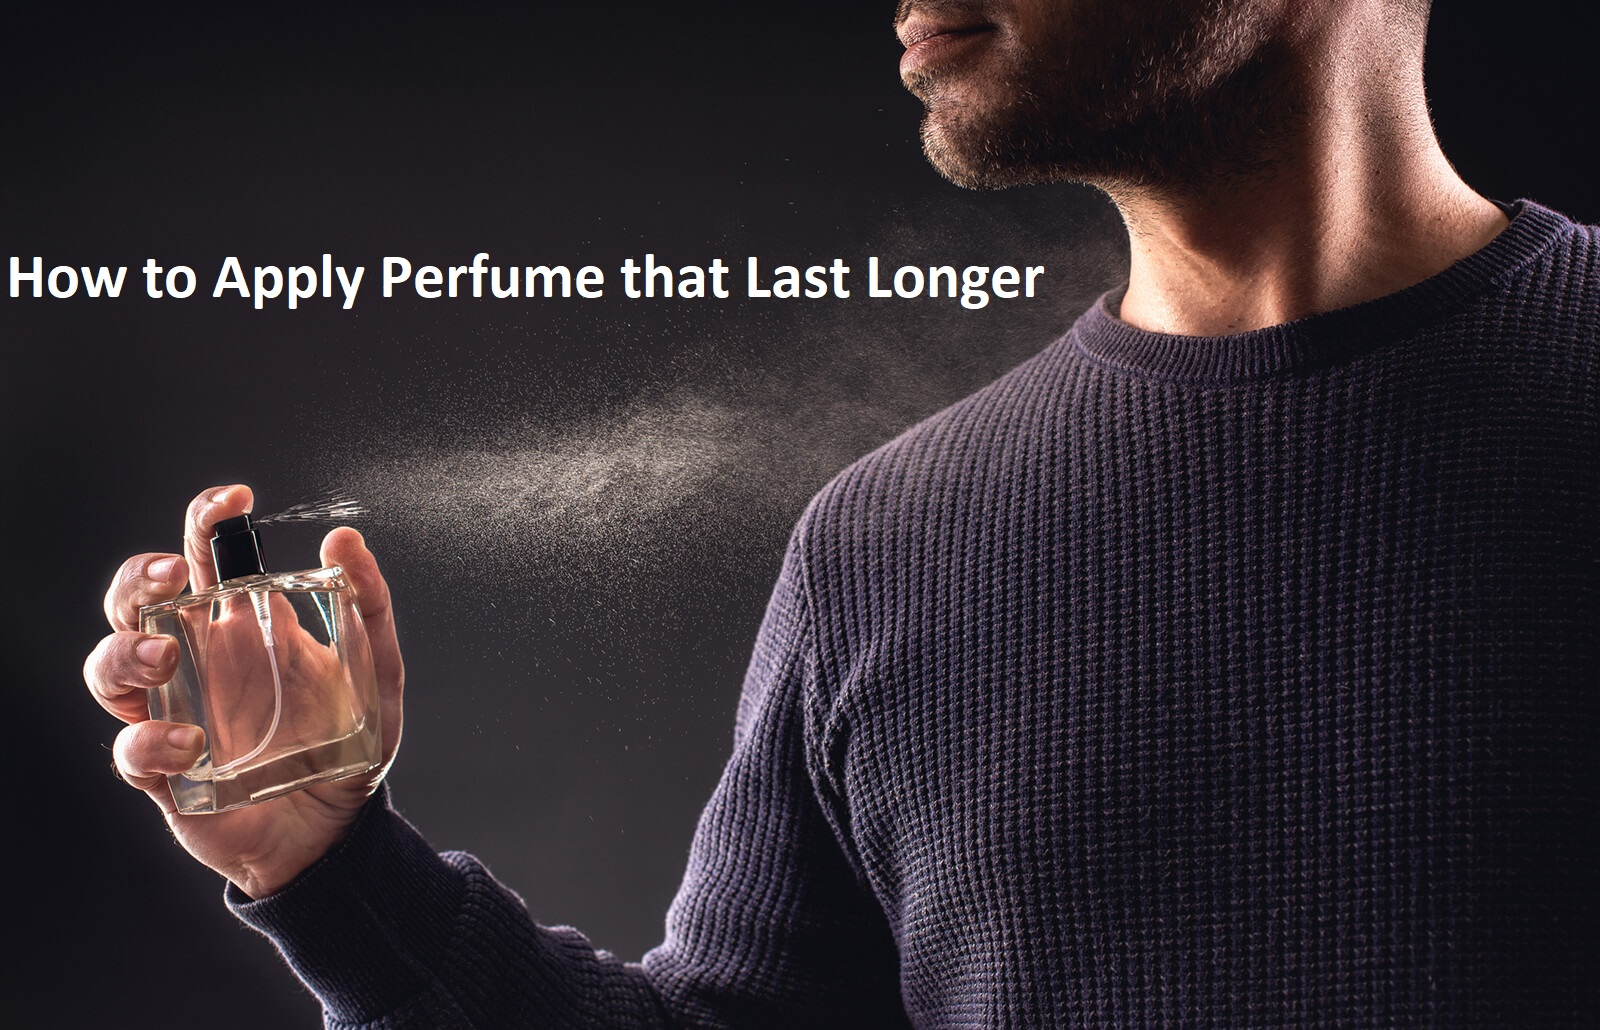 How to apply perfume that last longer